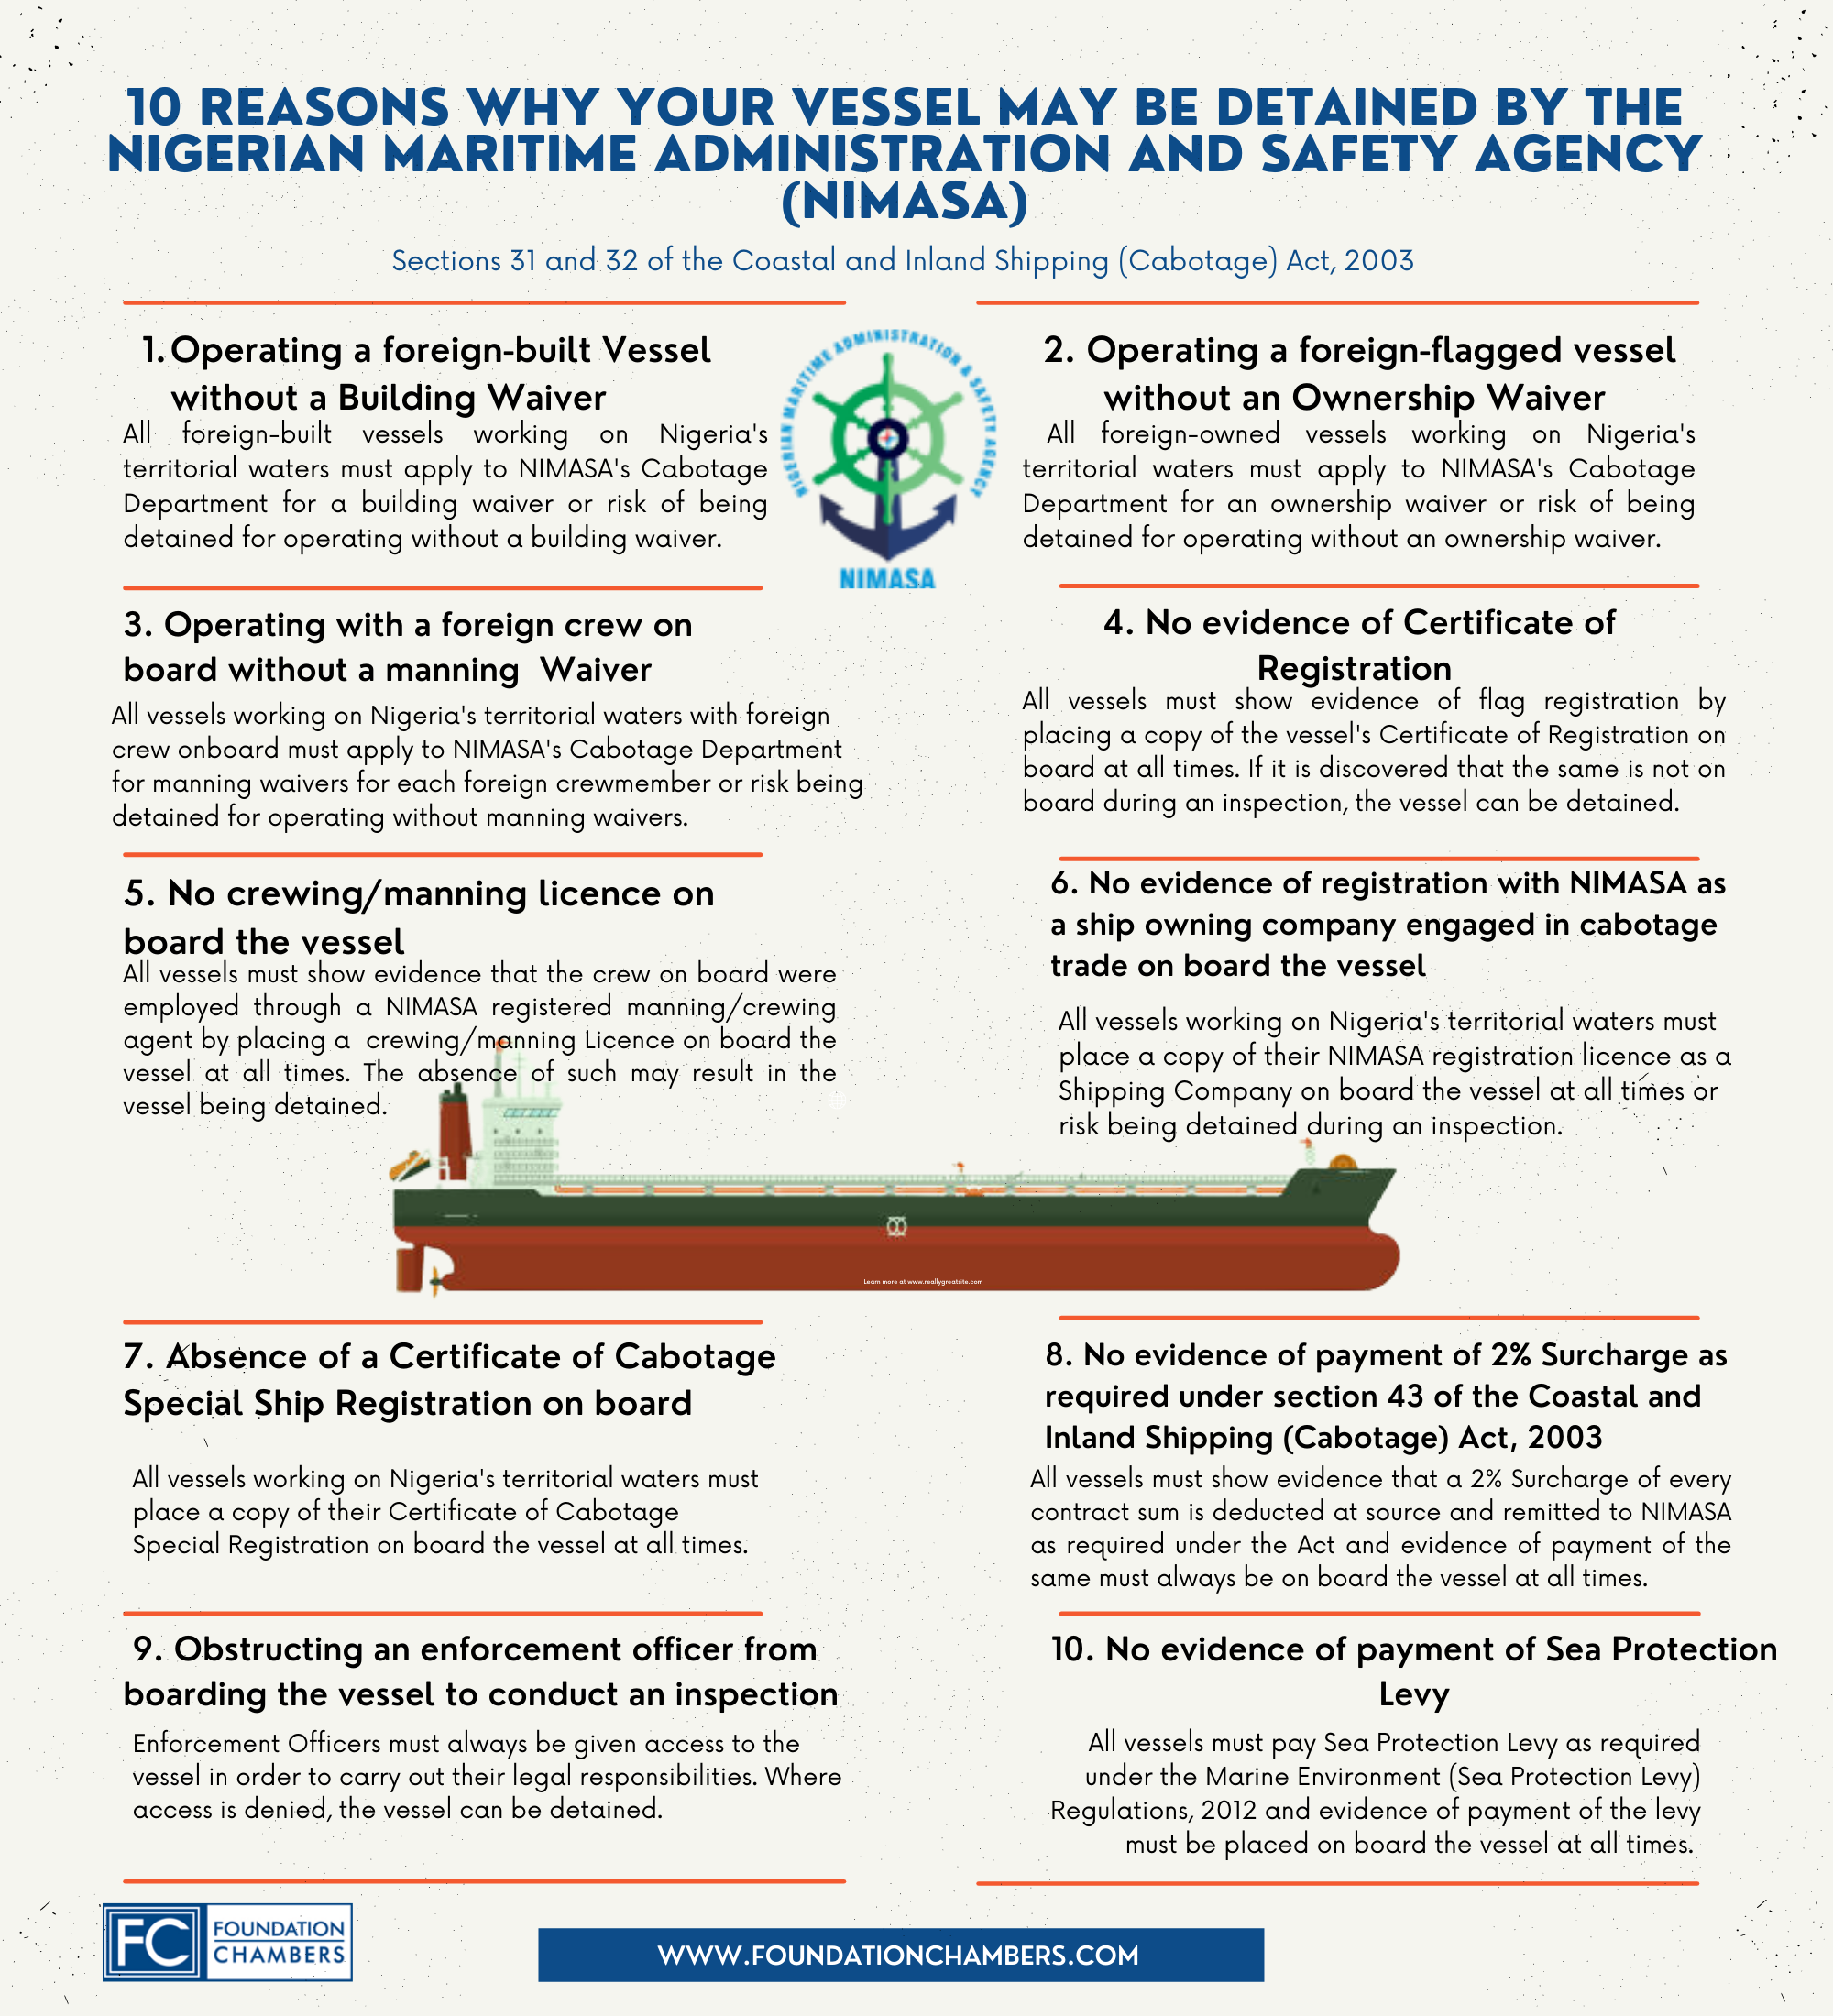 Infographic – Top 10 reasons why your vessel may be detained by NIMASA